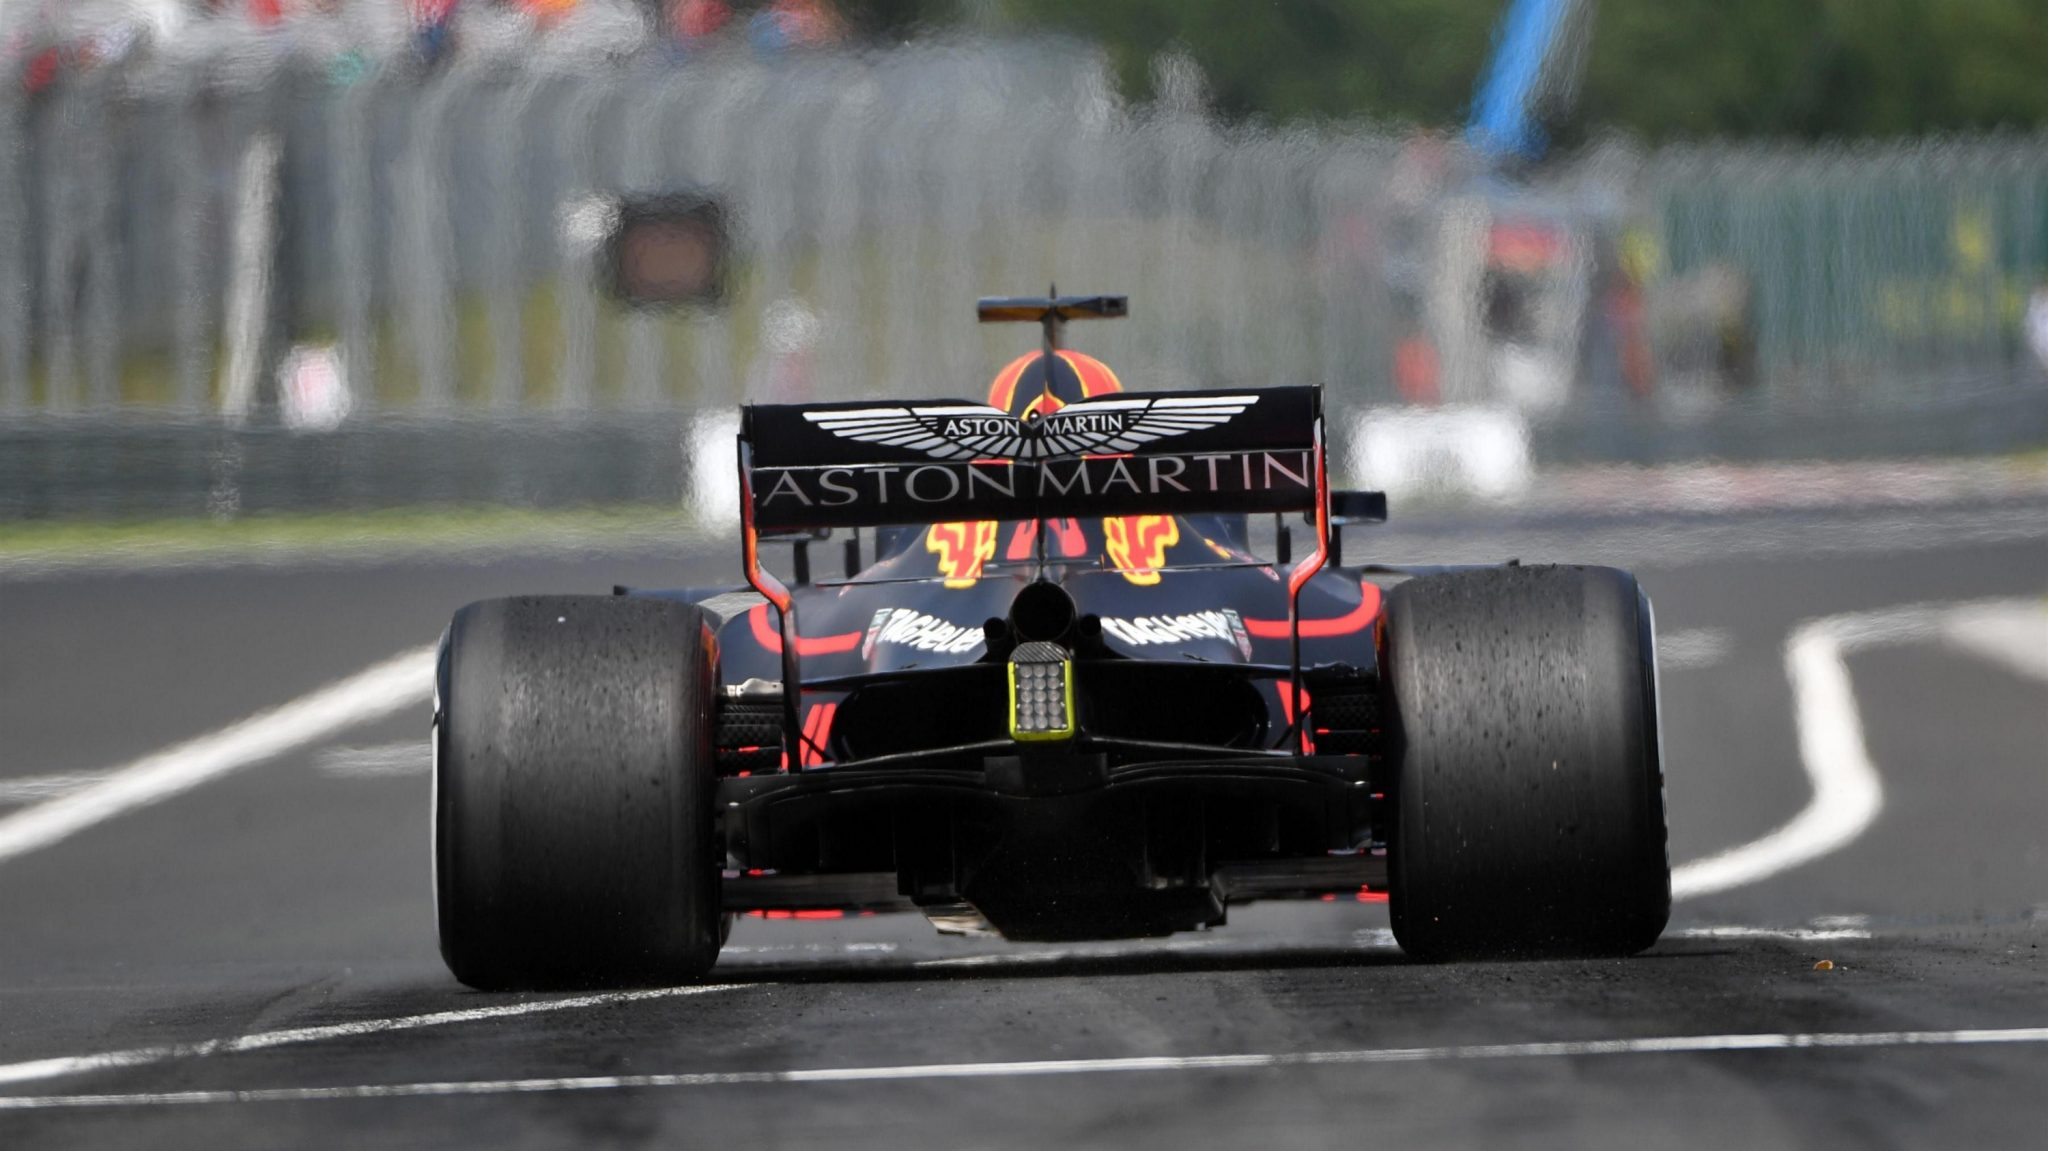 https://www.formula1.com/content/fom-website/en/latest/features/2018/7/gallery--the-best-images-from-hungary/_jcr_content/featureContent/manual_gallery/image5.img.2048.medium.jpg/1532684196333.jpg